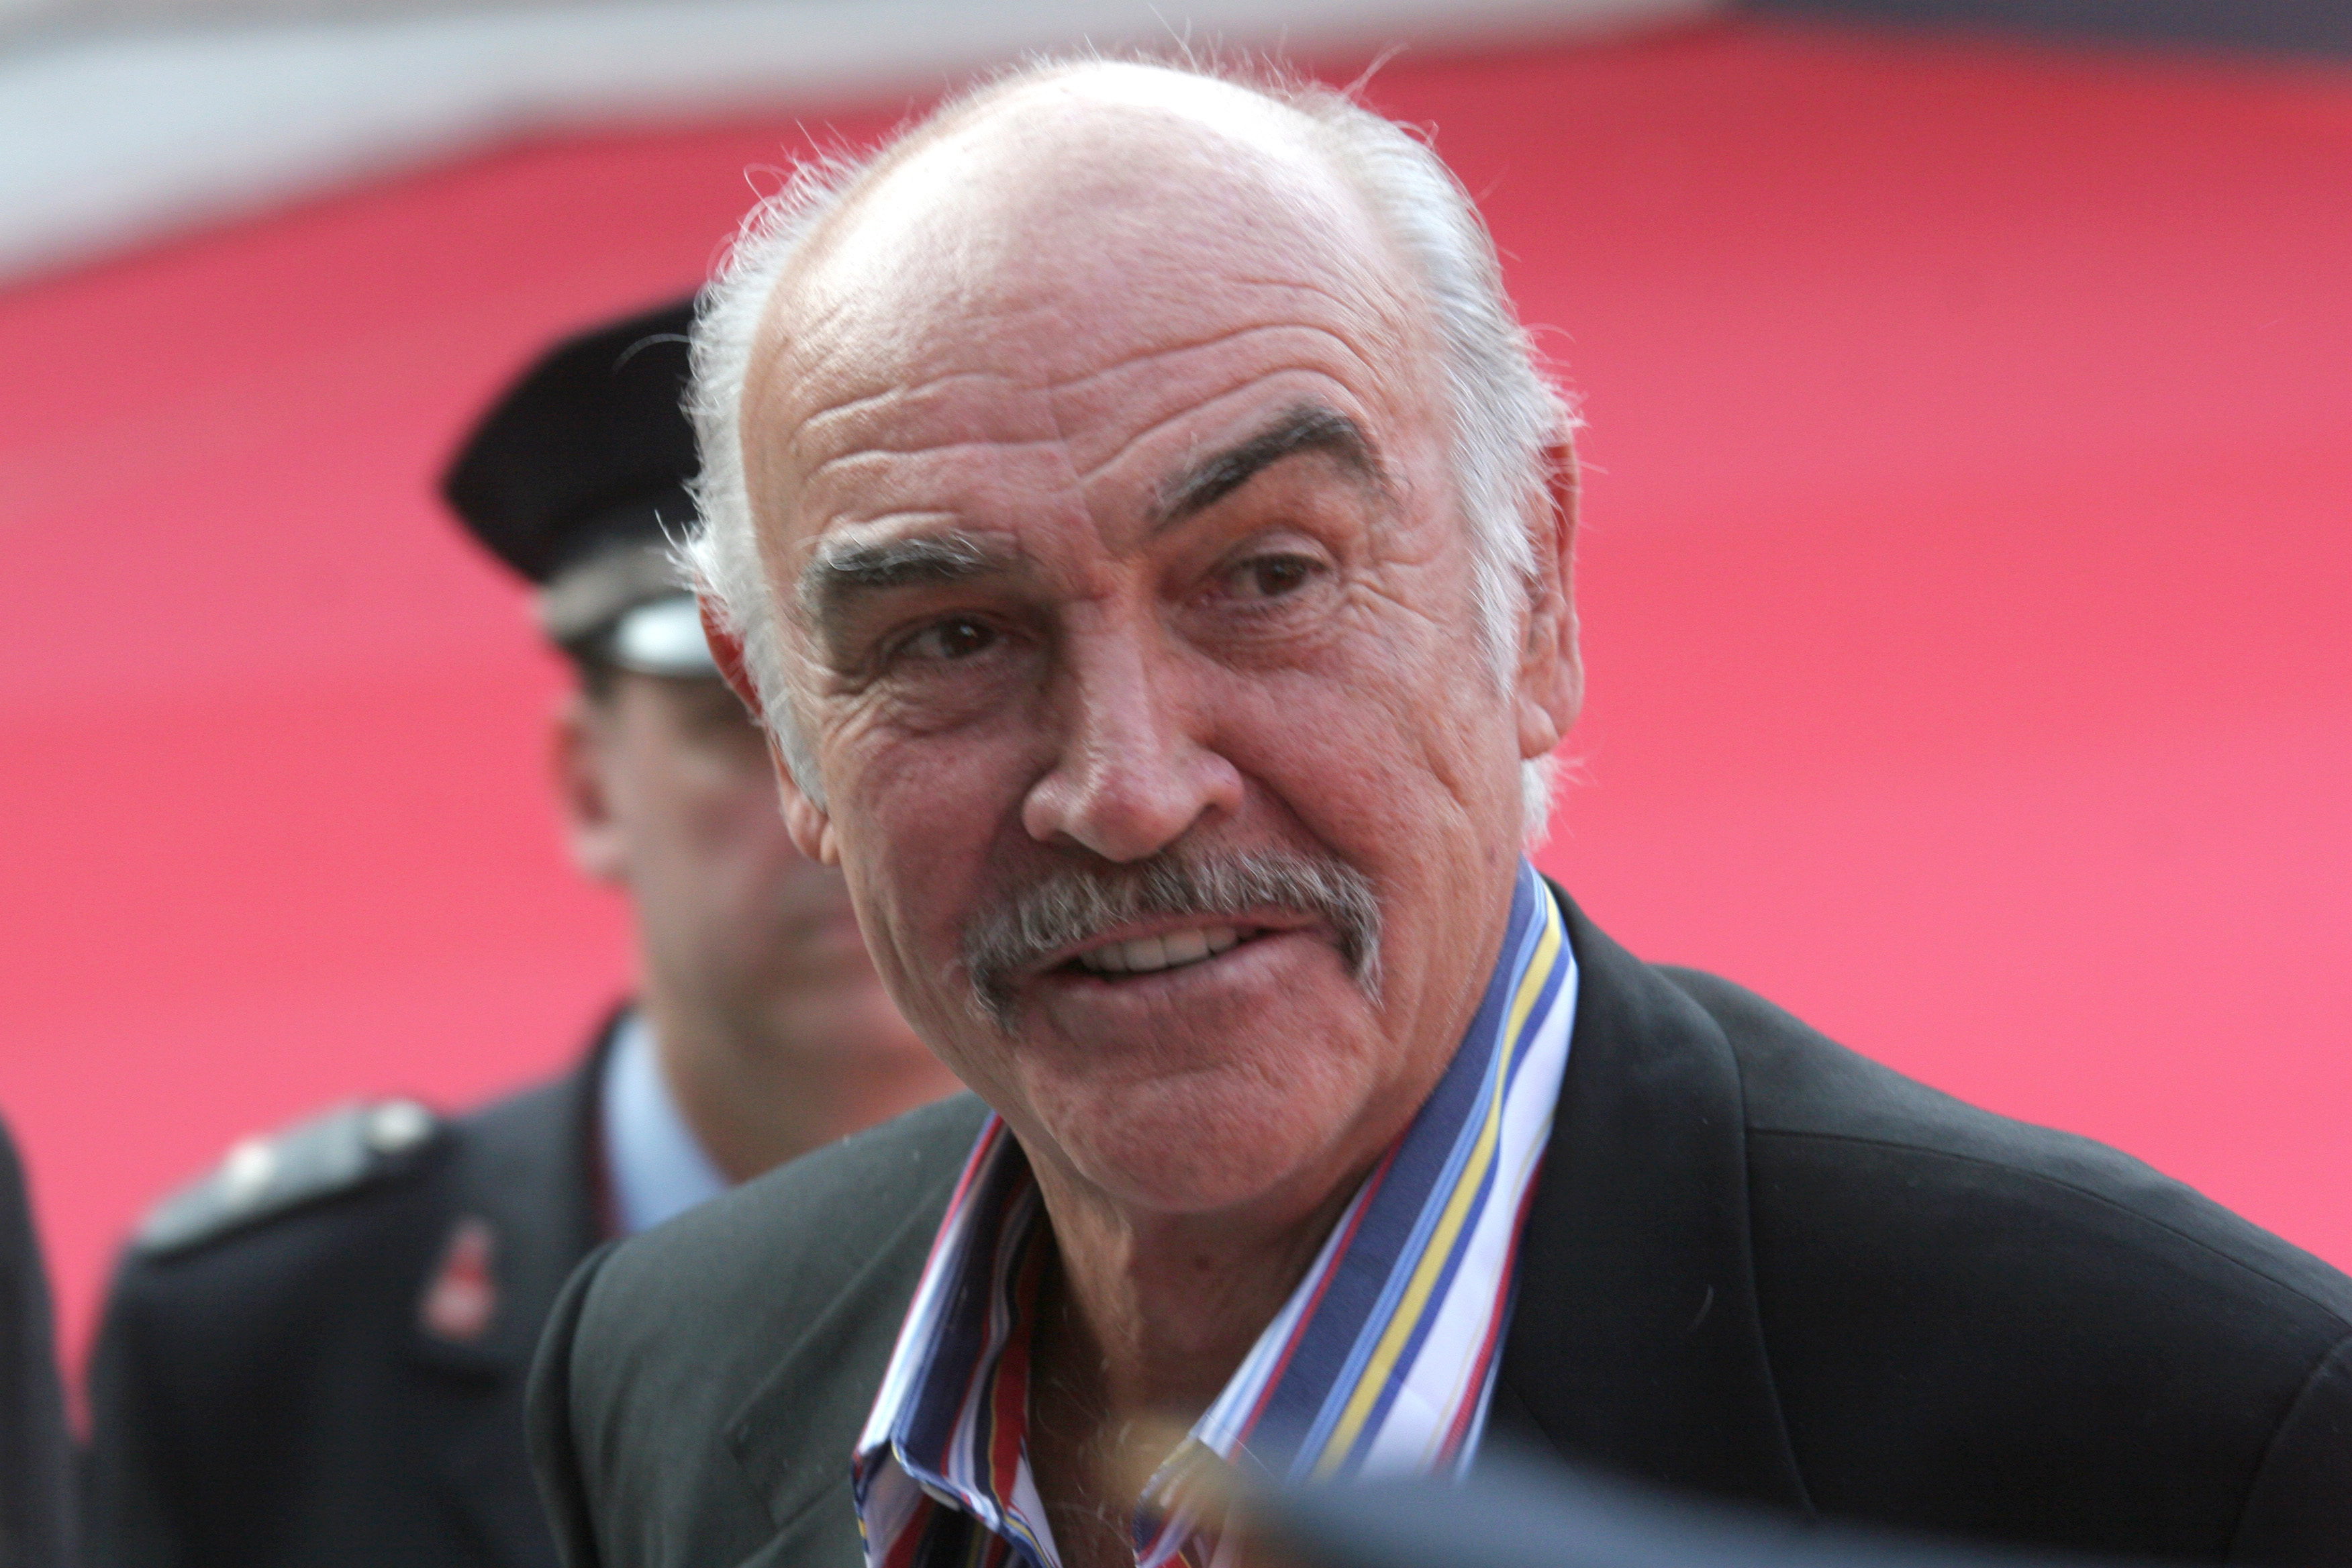 Sean Connery during 1st Annual Rome Film Festival - Sean Connery Honoured at Auditorium Parco della Musica: Sinopoli Hall in